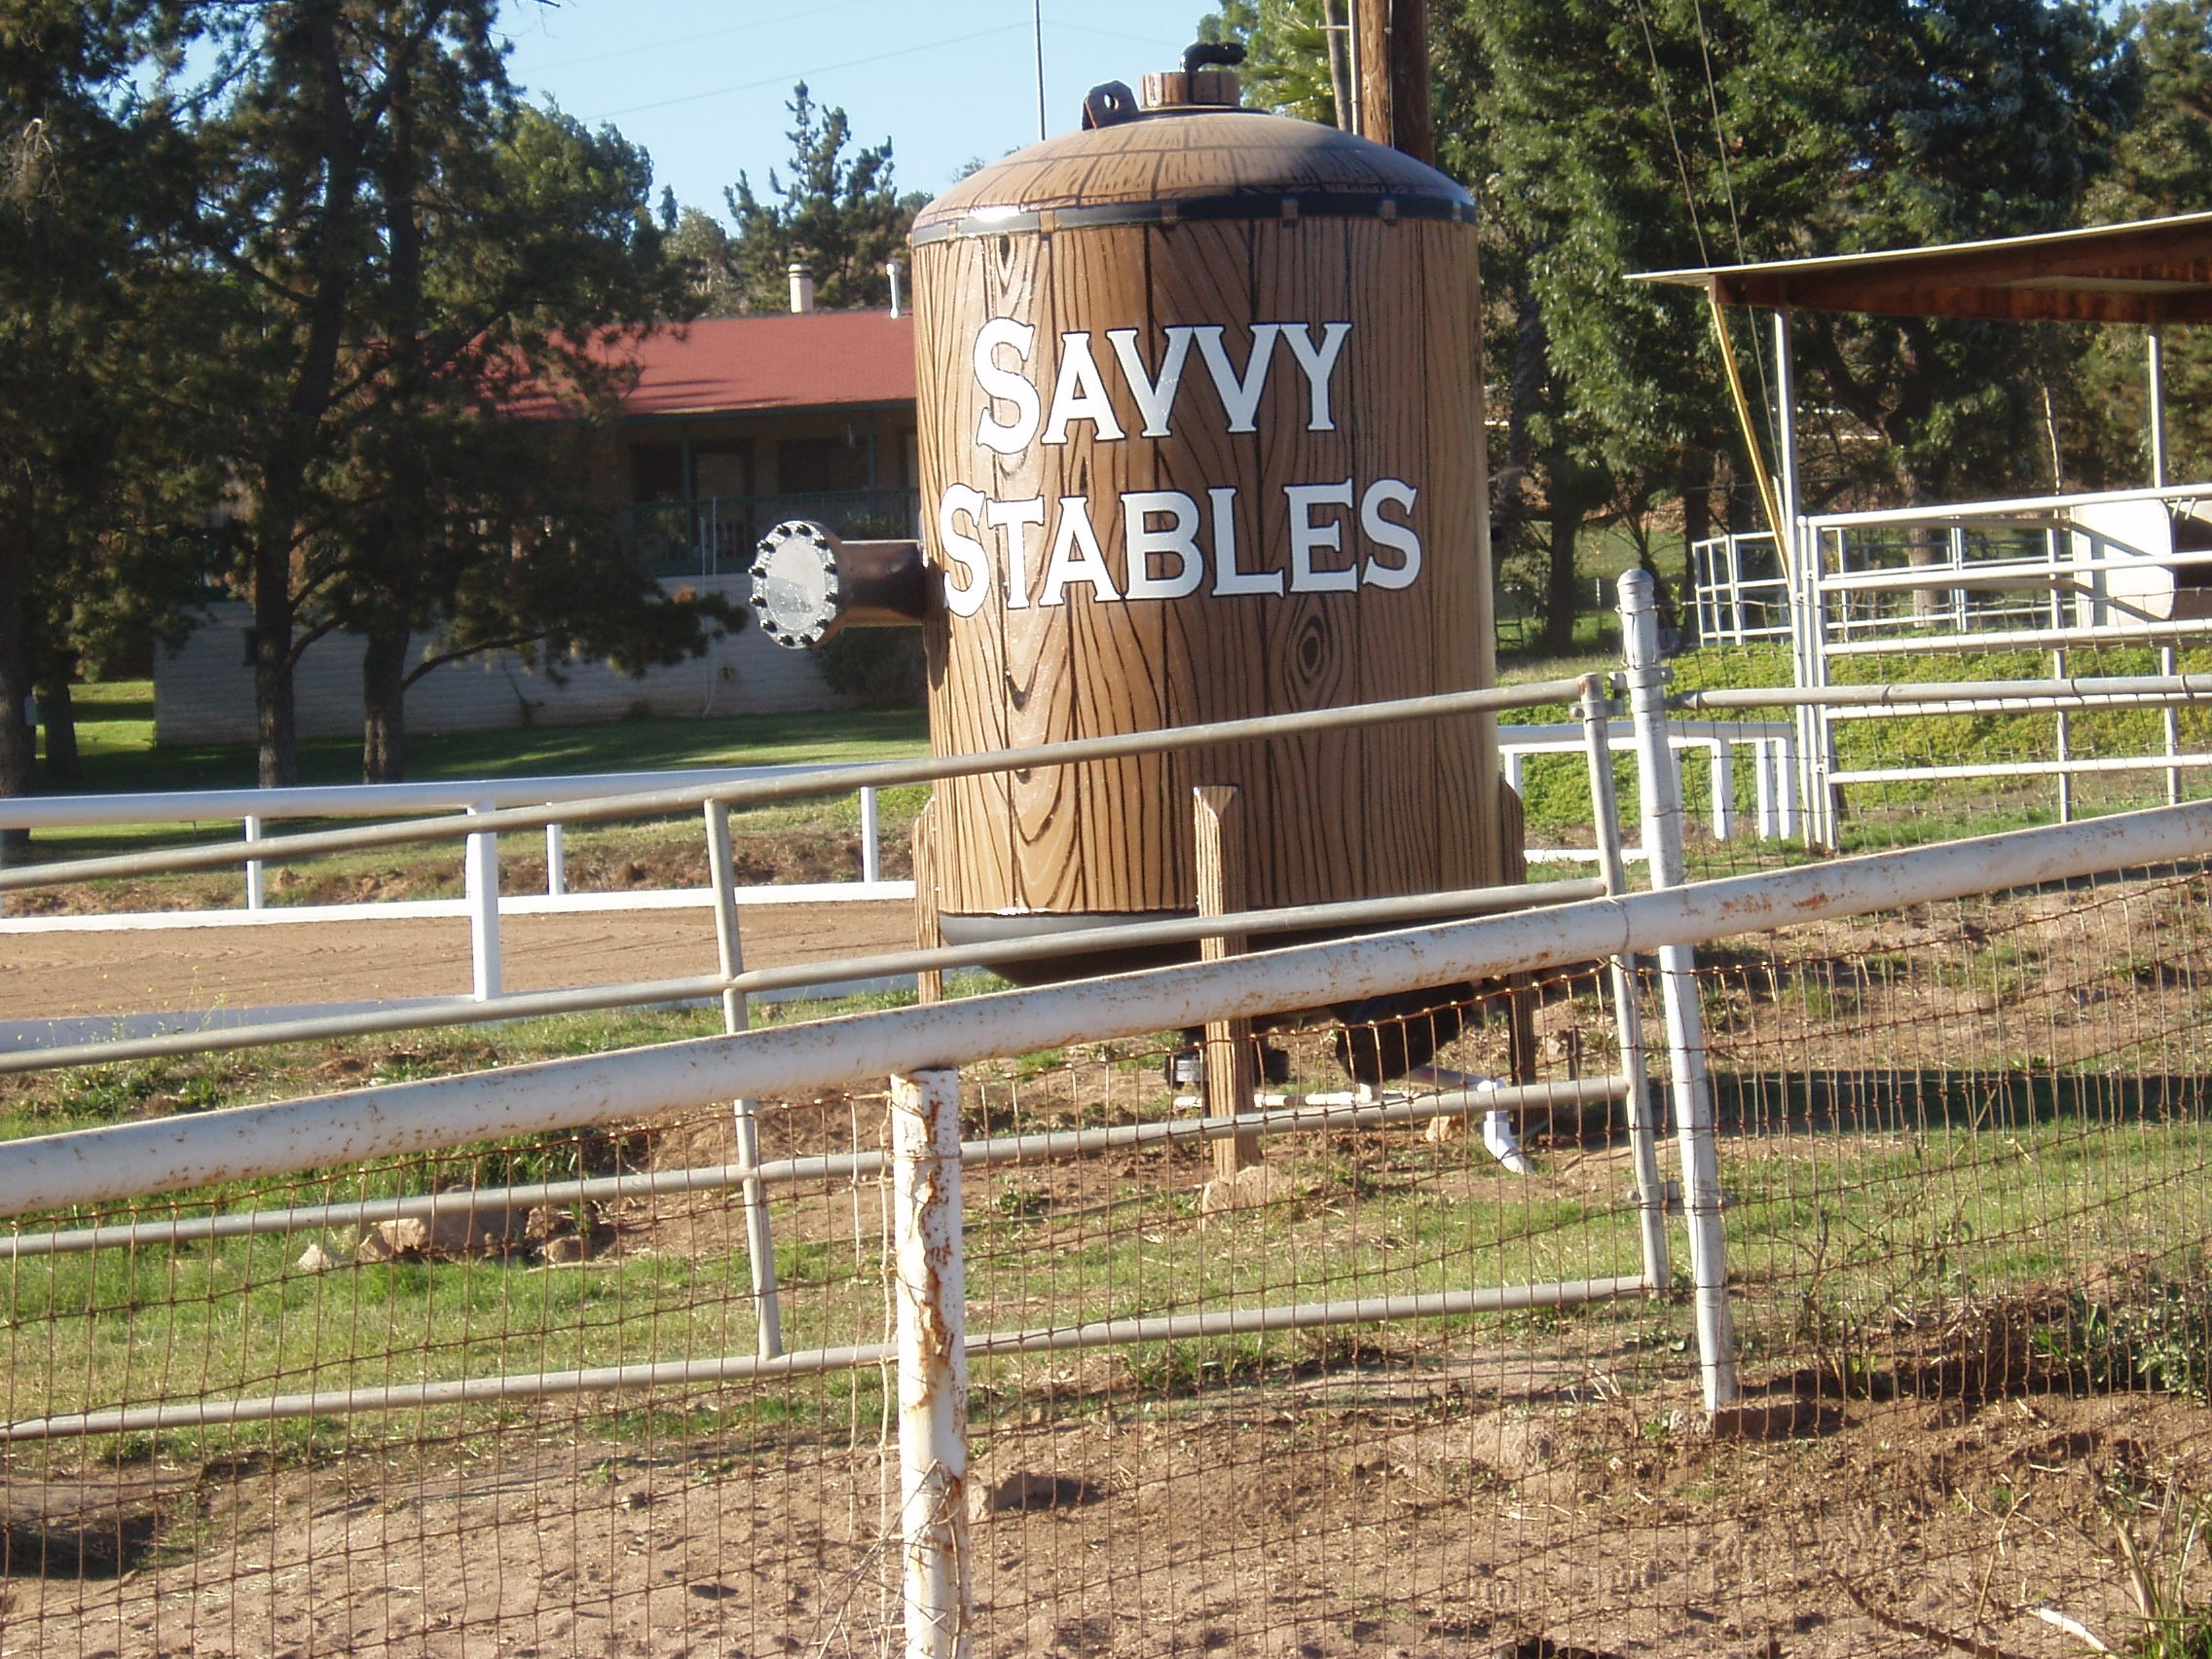 Hand Painted Signs_Savvy Stables 2.JPG